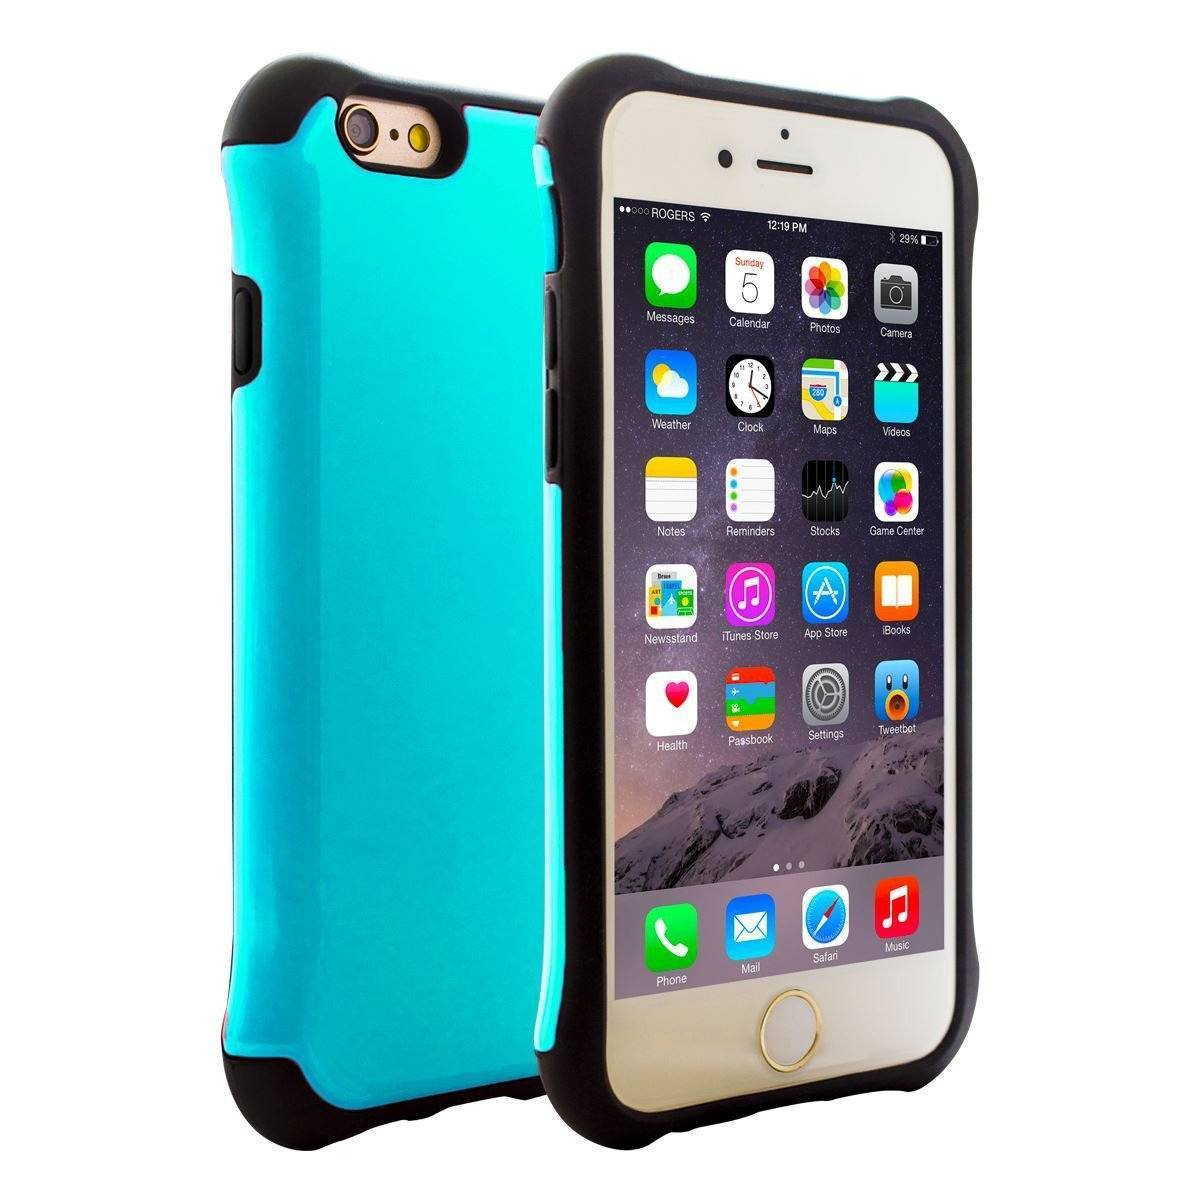 Shiny Square for iPhone 6 - Teal